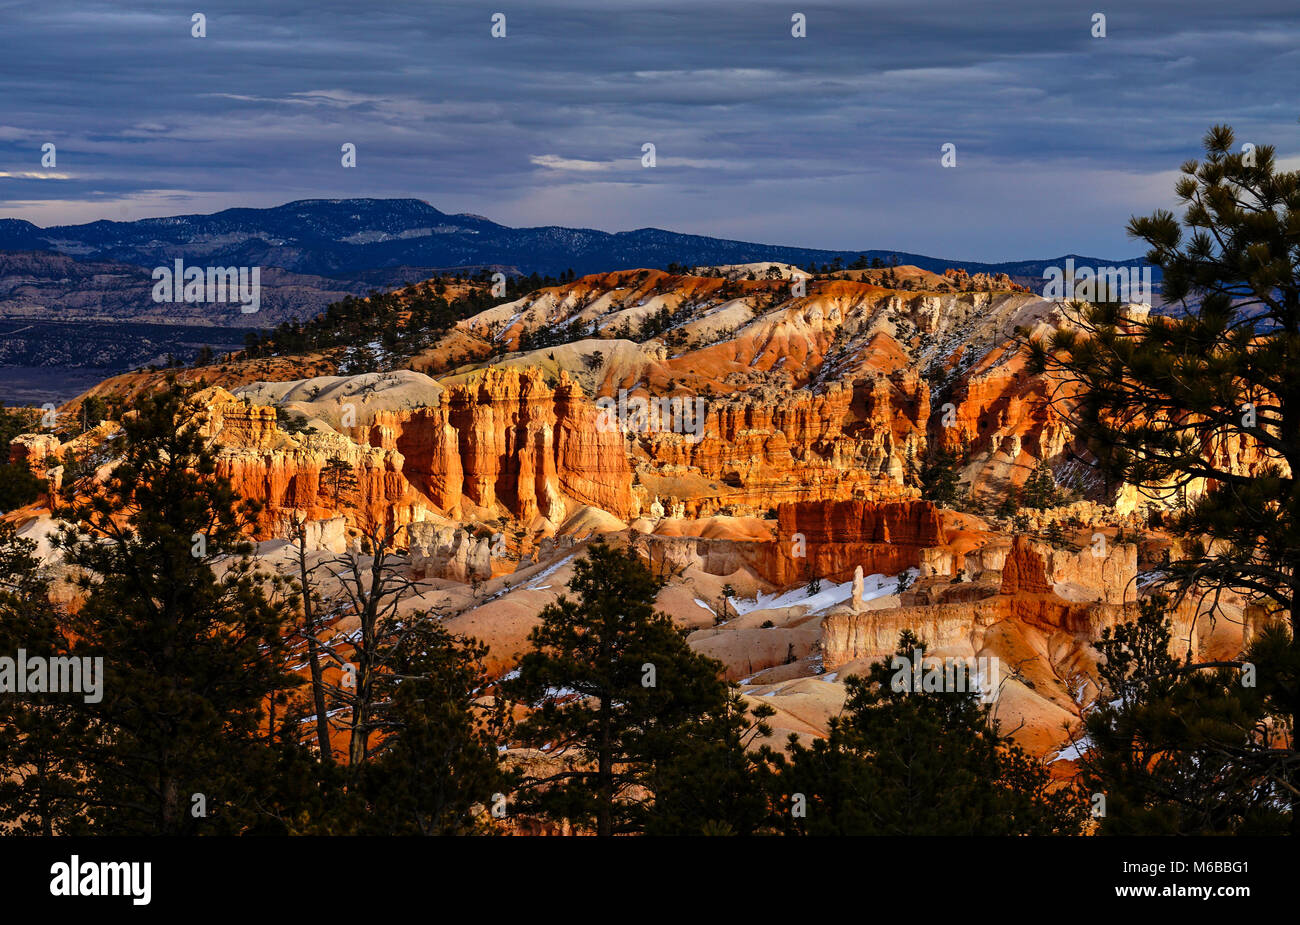 Bryce Canyon, Utah, United States of America Photo Stock